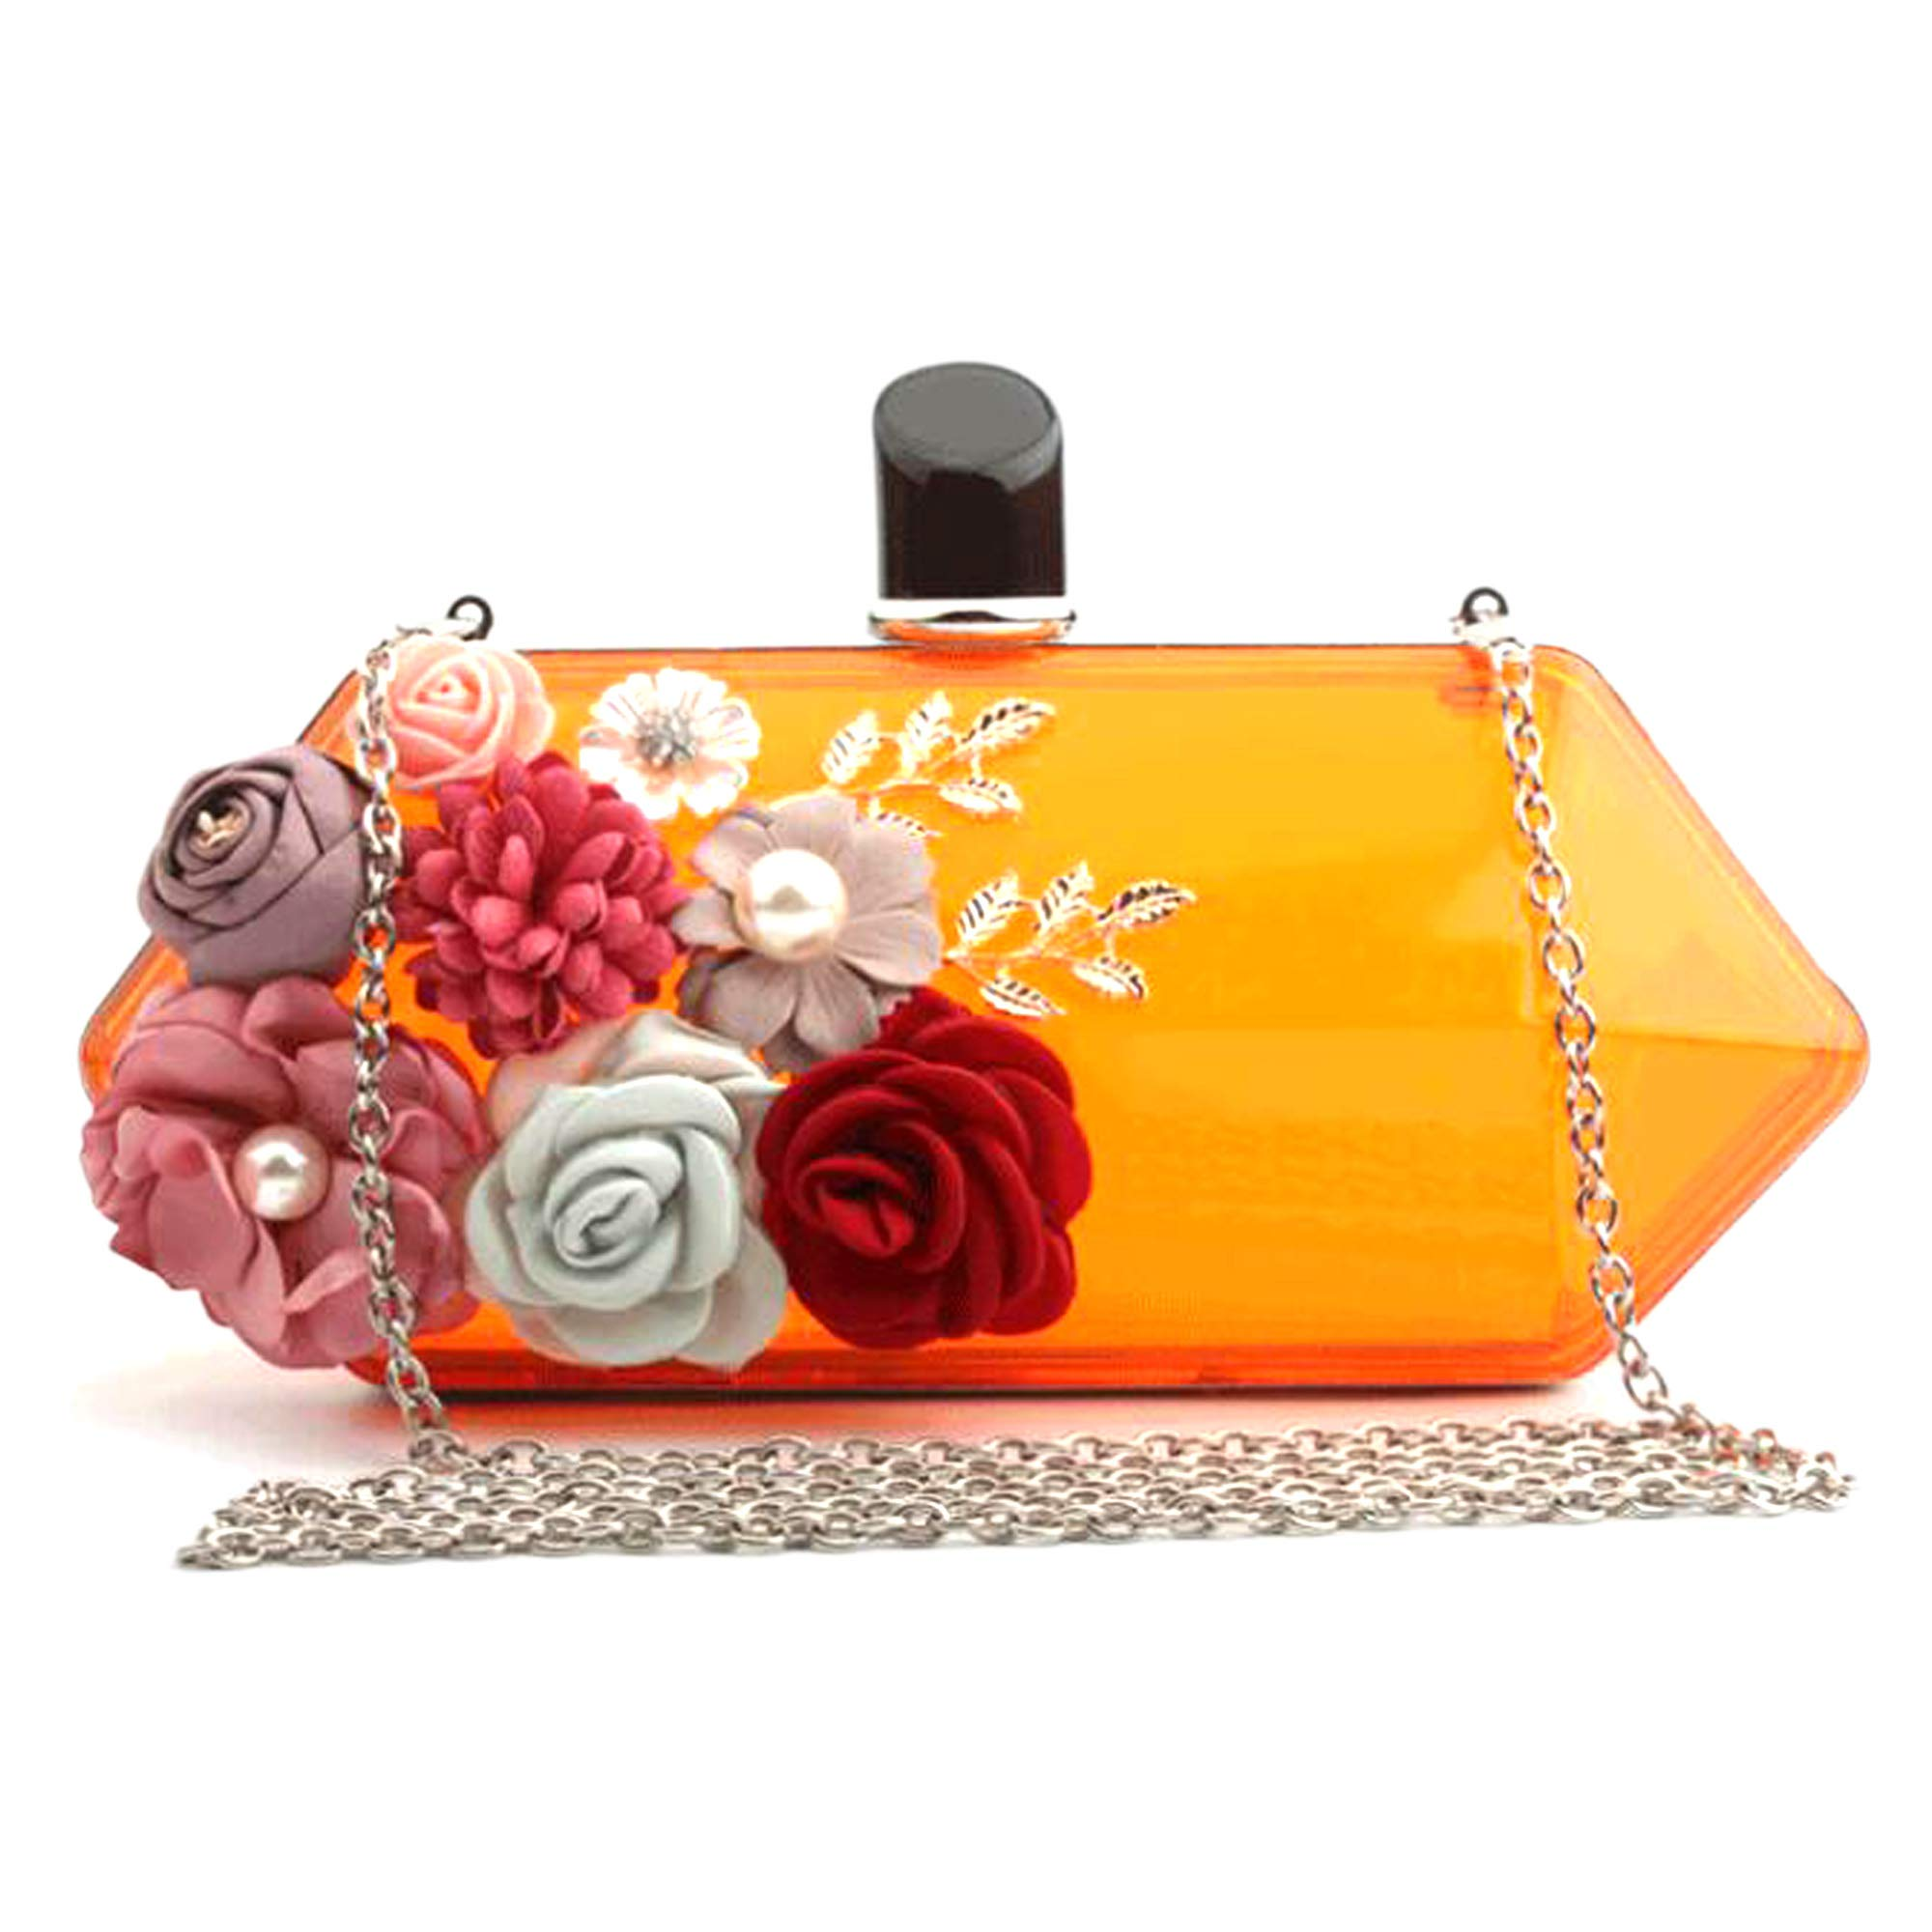 EPLAZA Women Acrylic Clutch Purse Transparent Flowers Beaded Evening Bags Handbag For Bride Wedding Party Prom (orange)